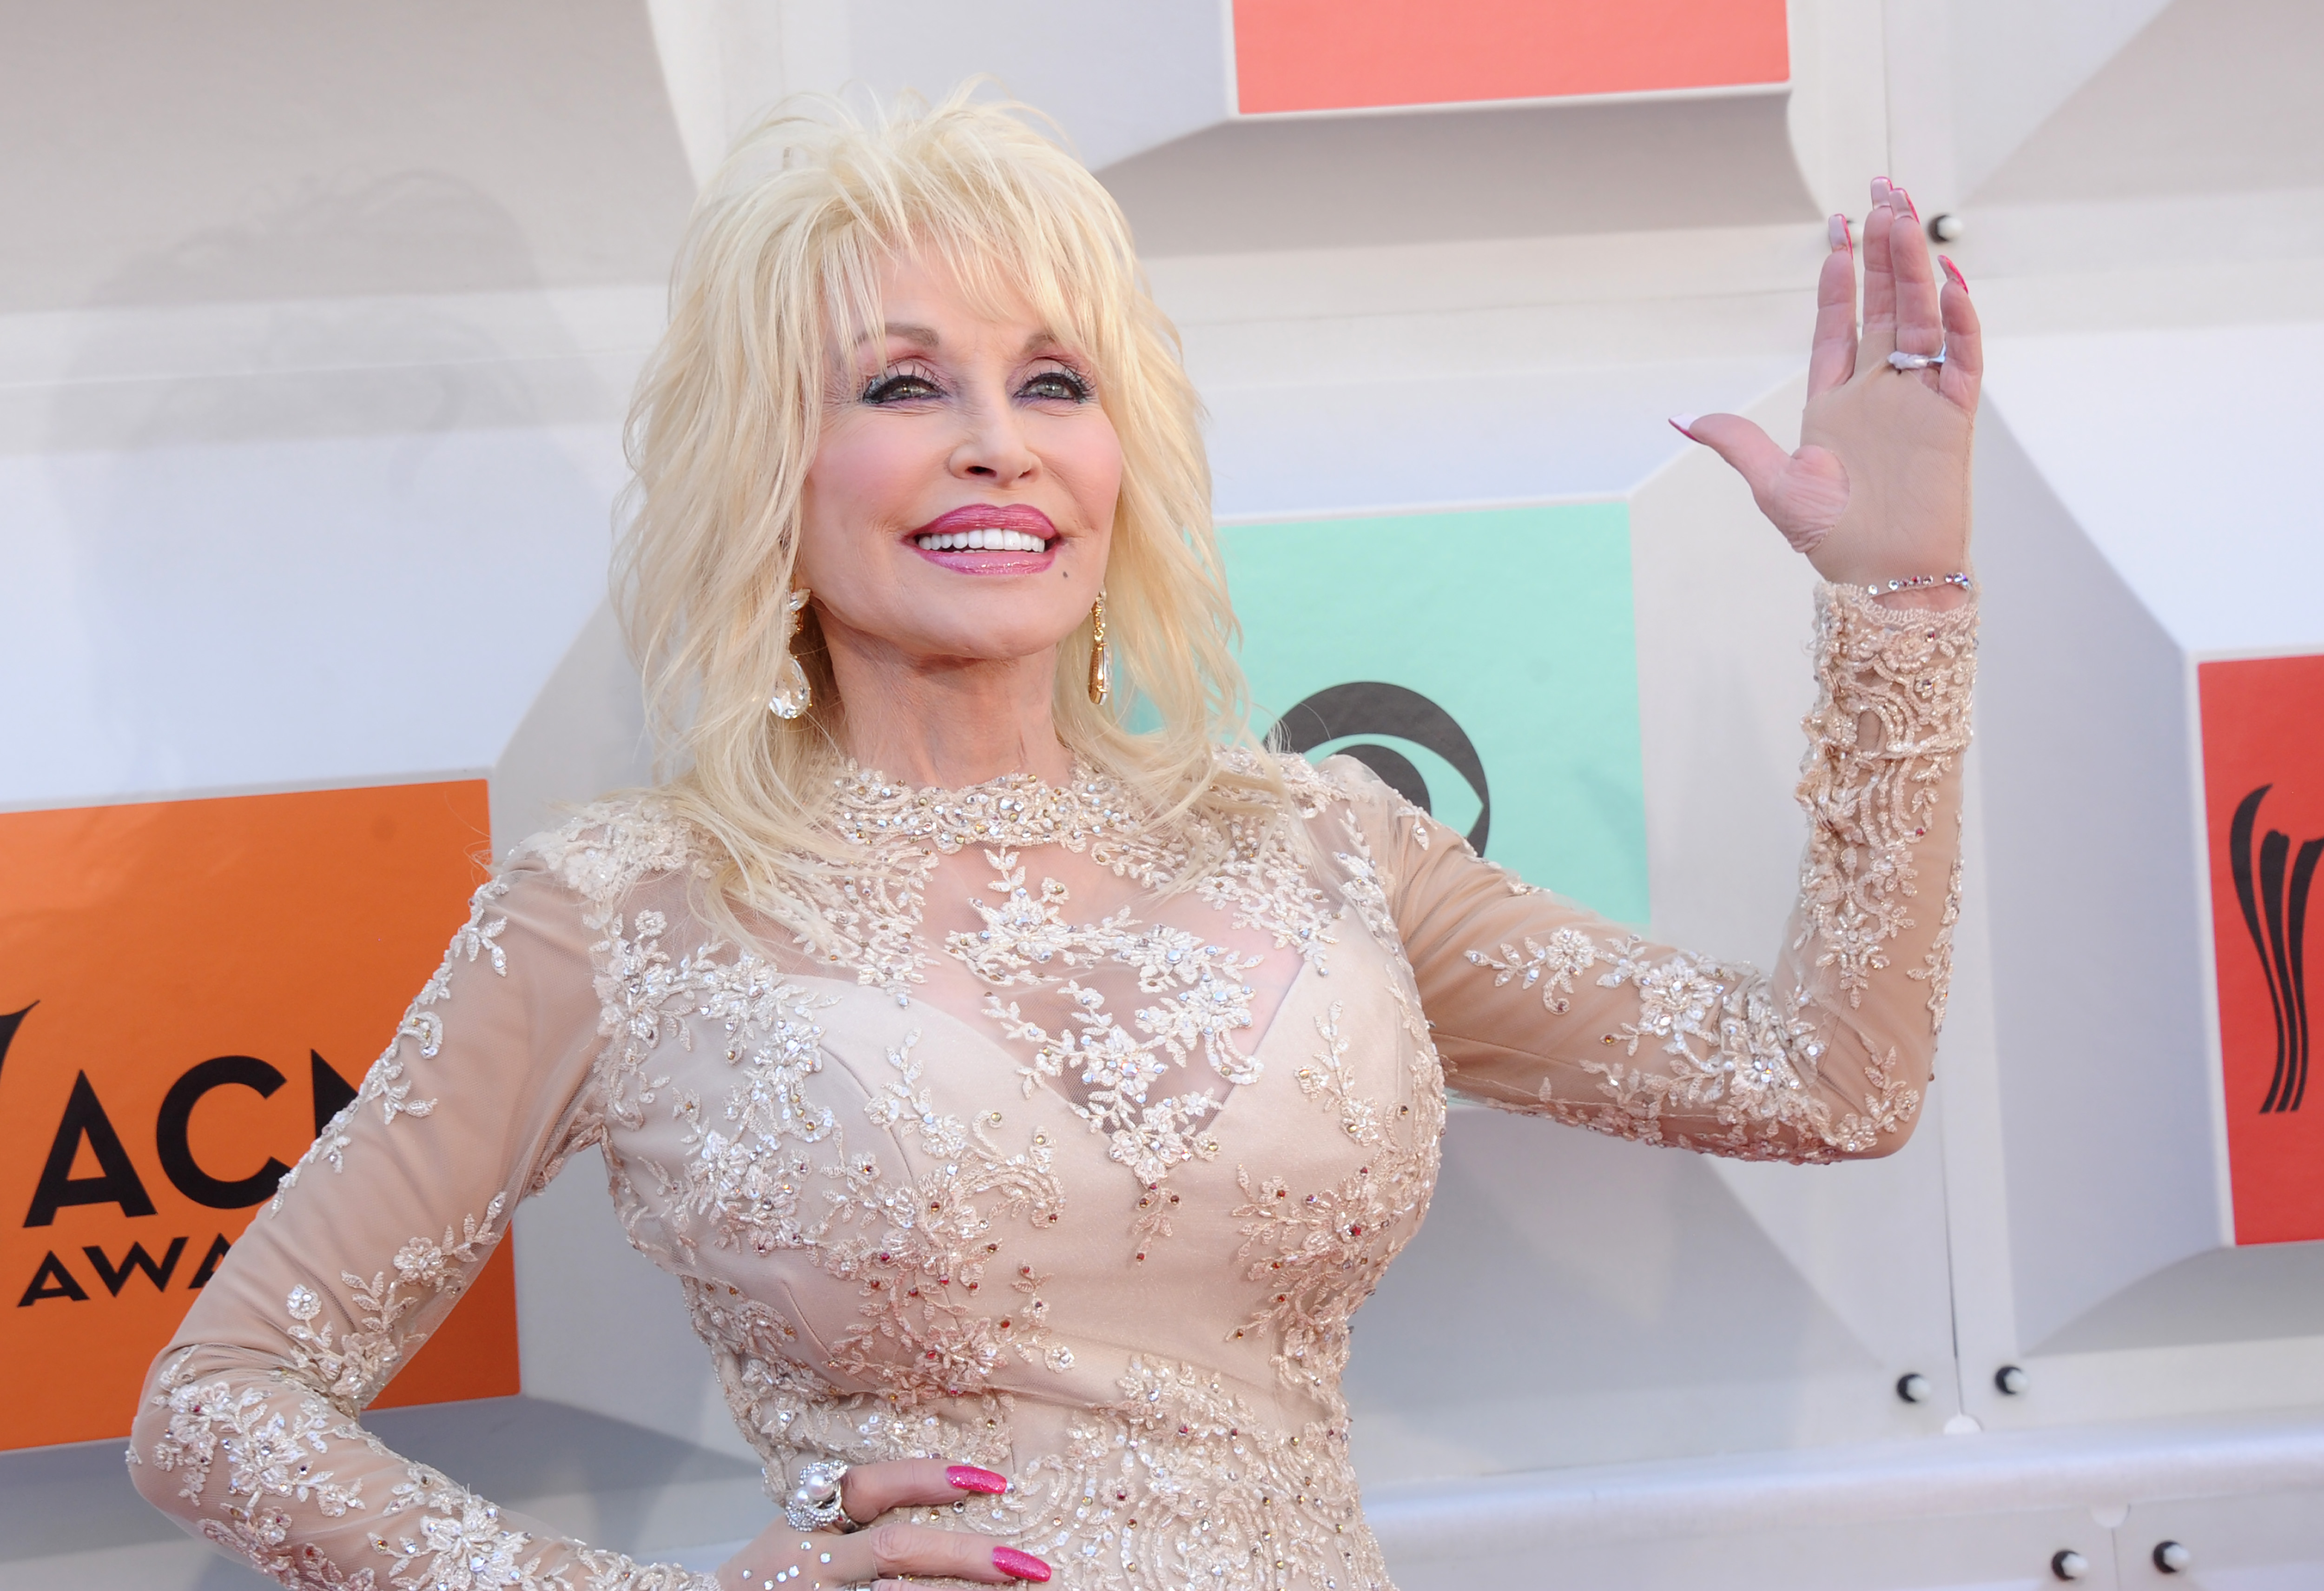 Singer Dolly Parton arrives at the 51st Academy Of Country Music Awards at MGM Grand Garden Arena on April 3, 2016 in Las Vegas, Nevada.